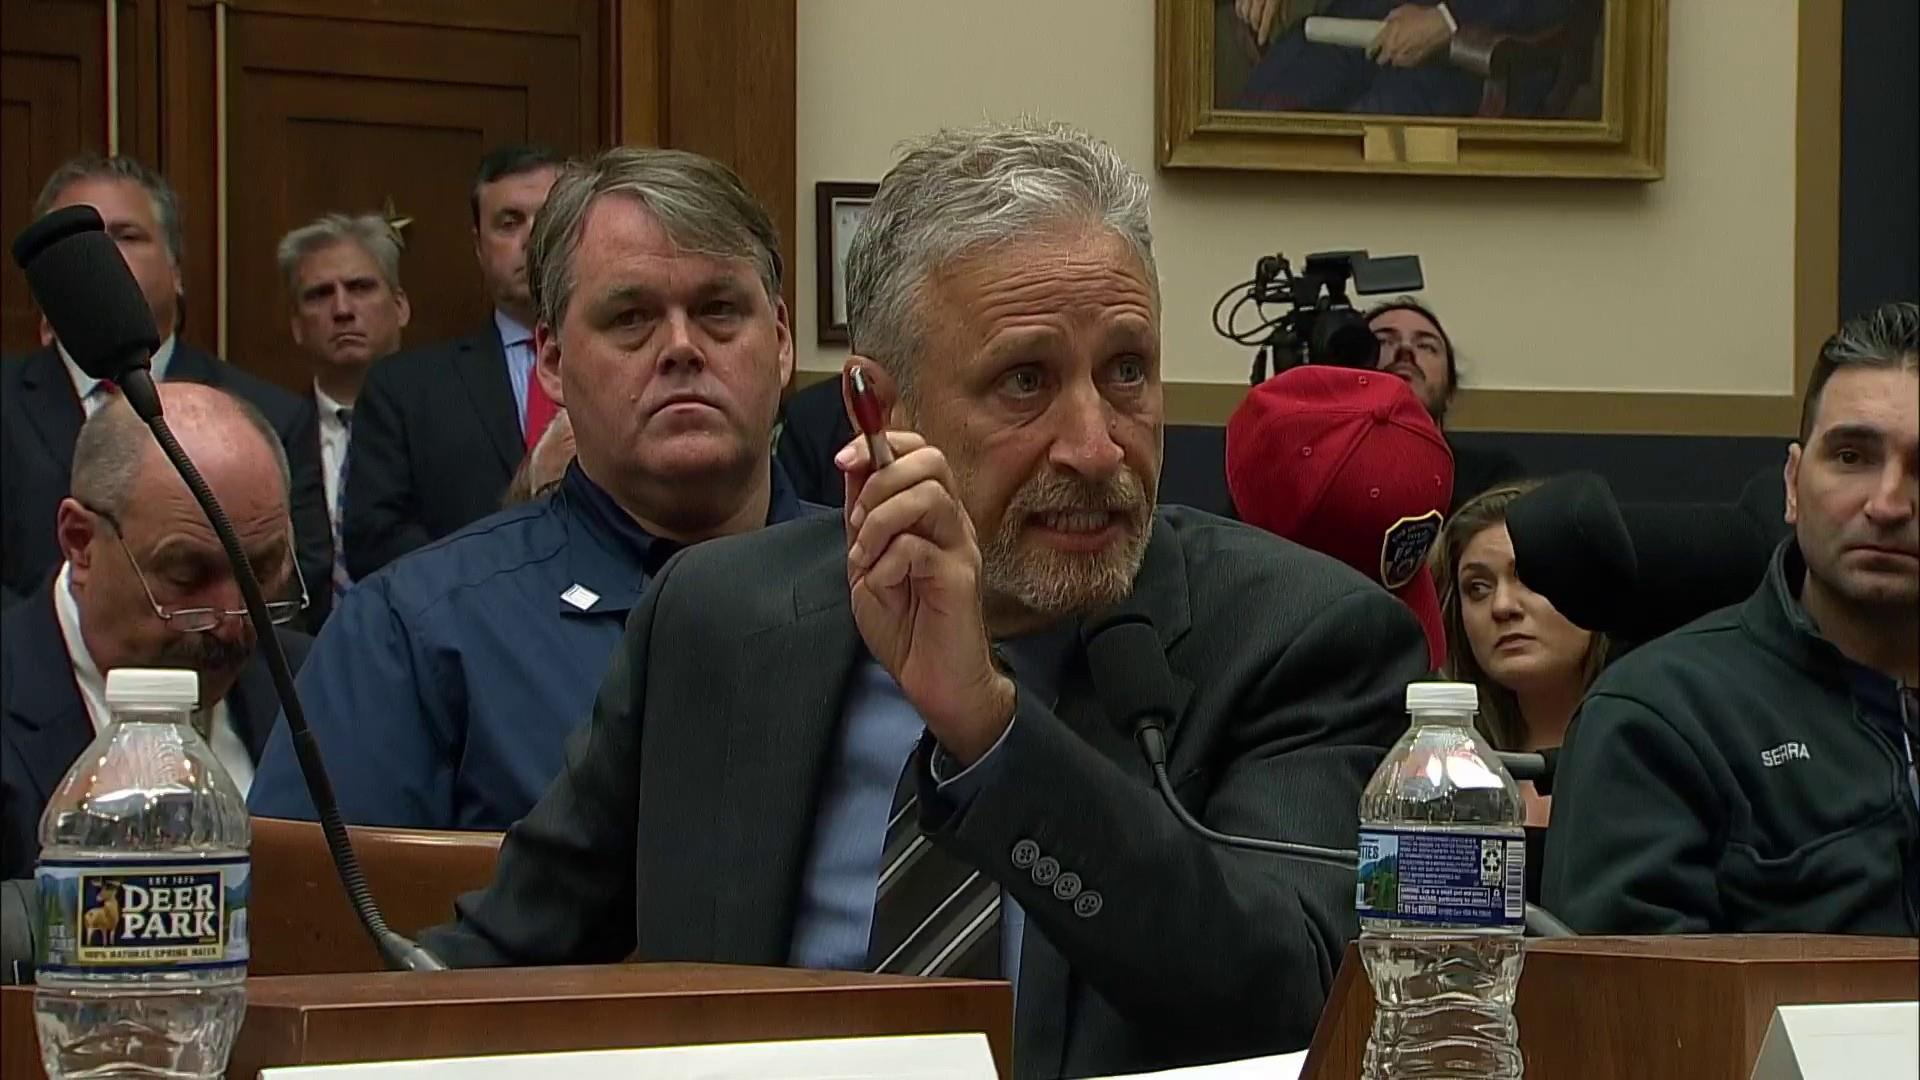 Jon Stewart excoriates Congress over inattention to 9/11 victims